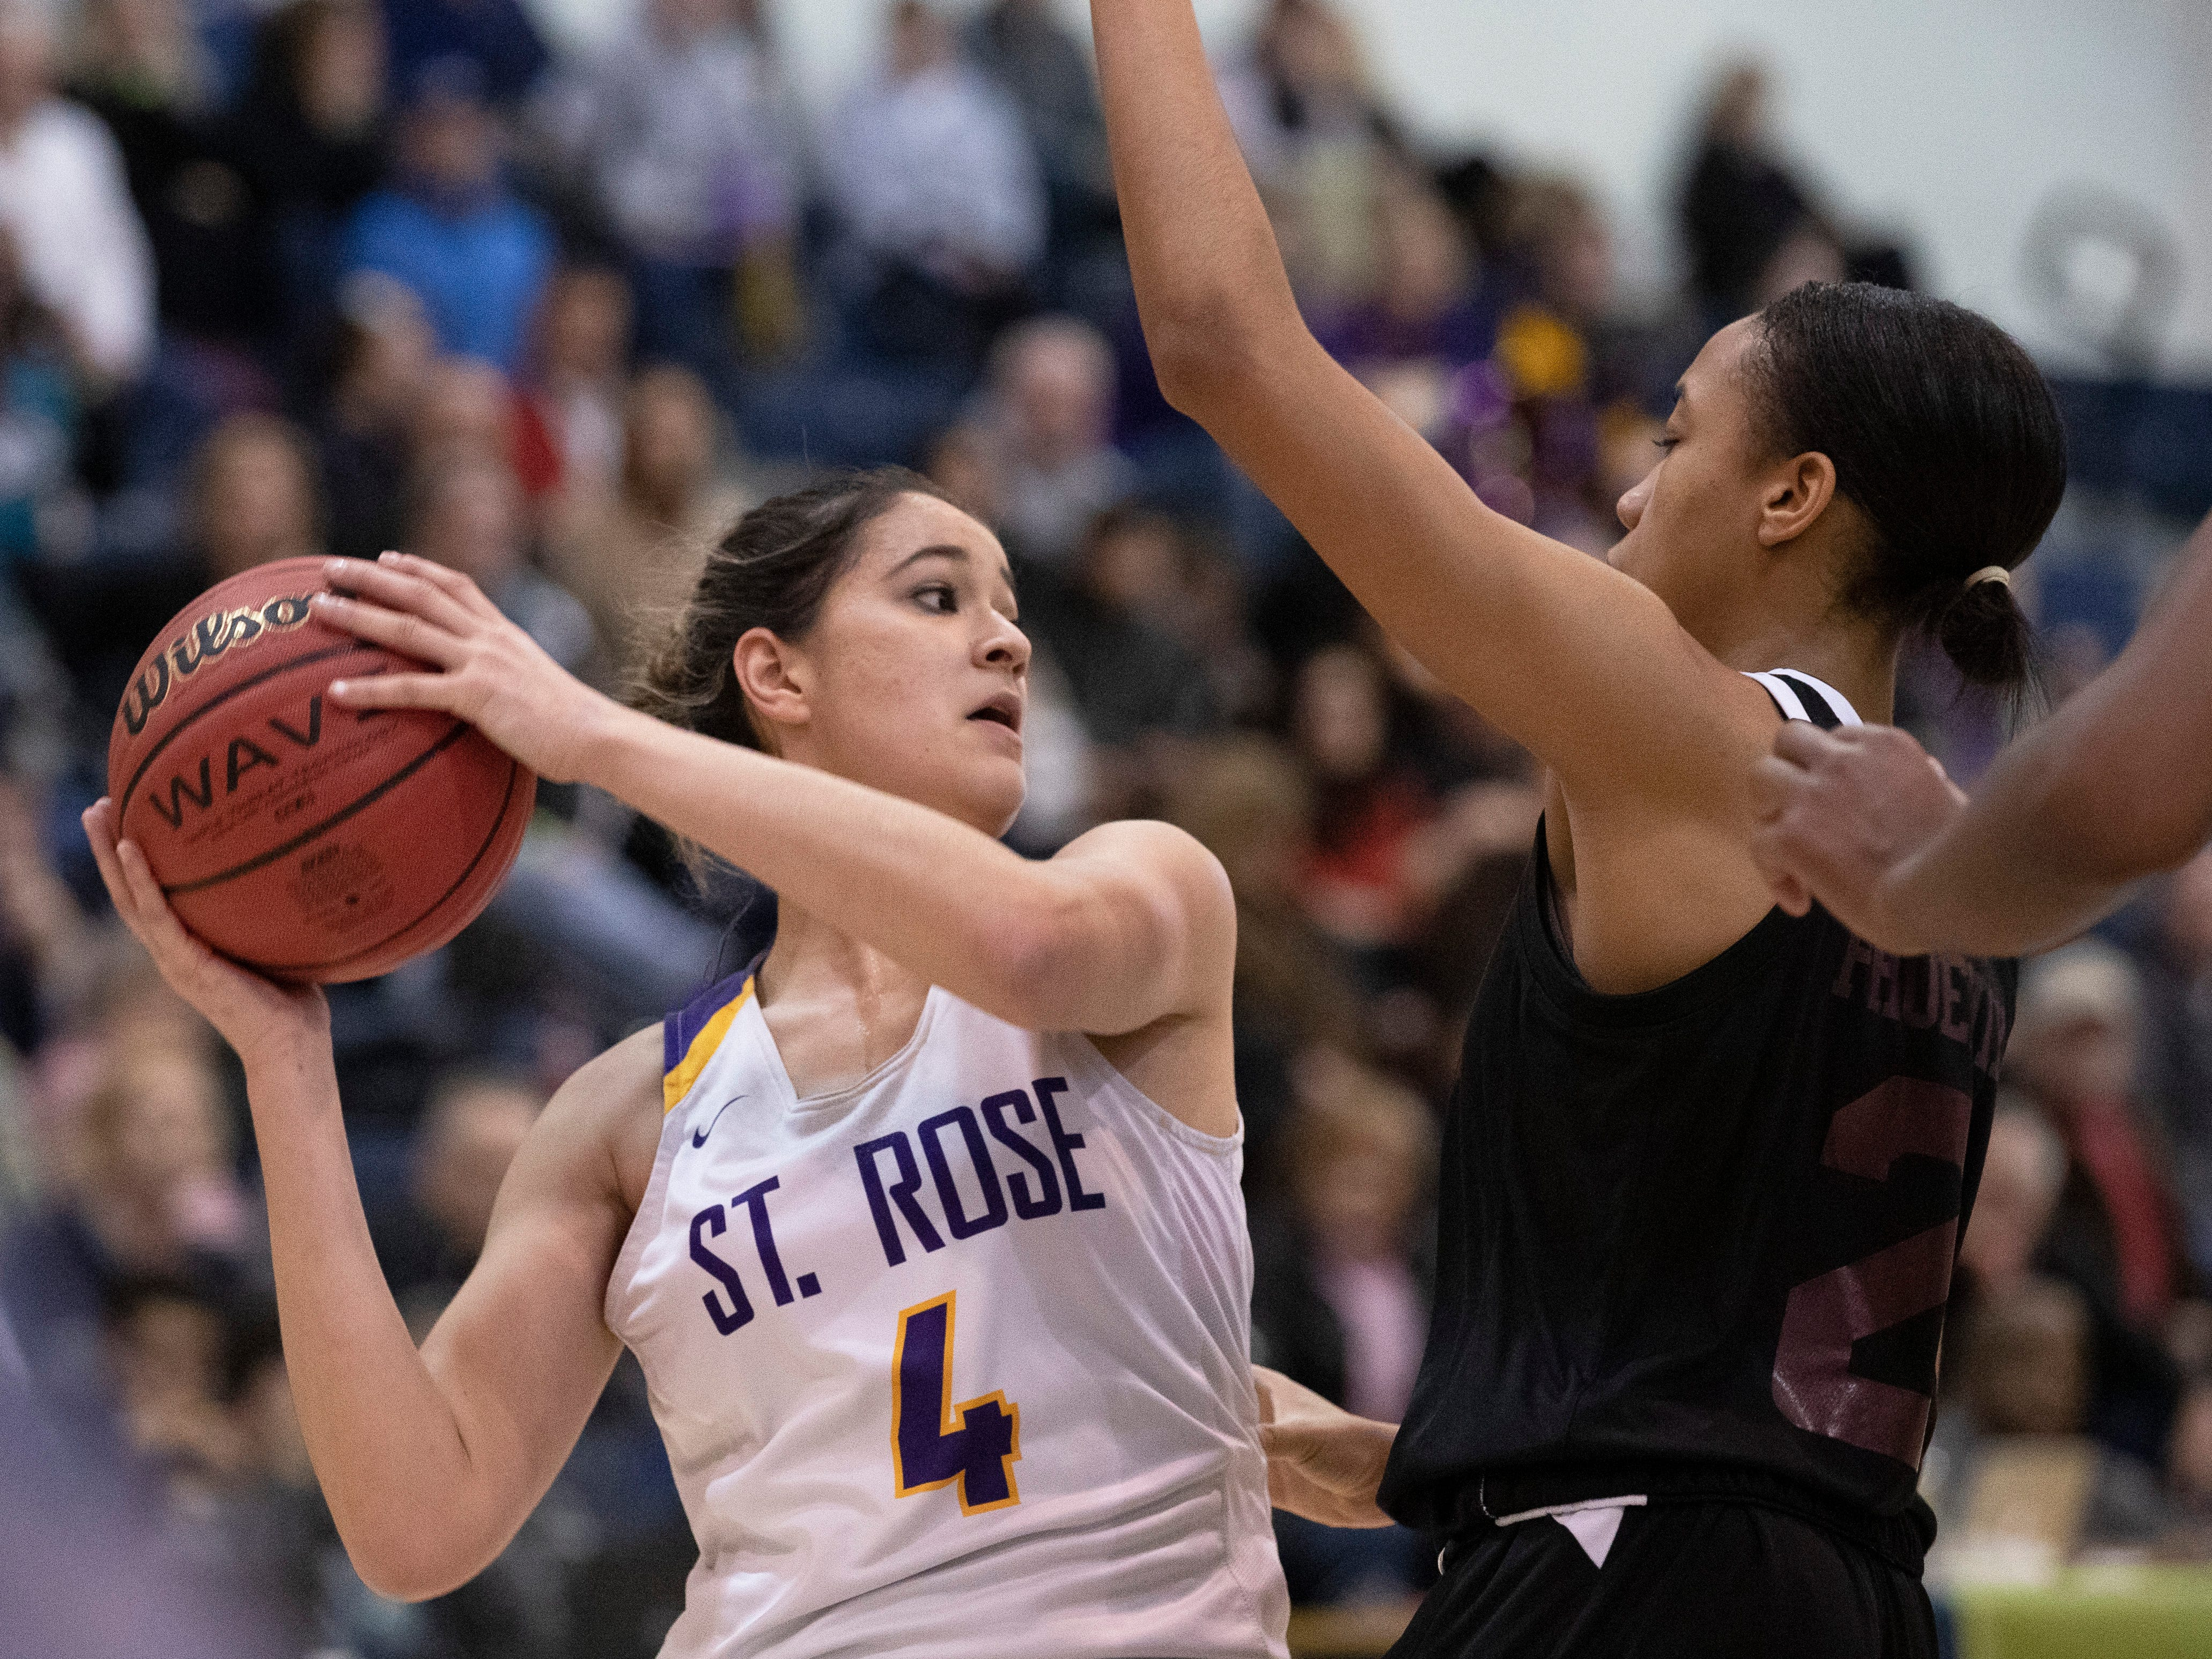 St. Rose's Samantha Mikos during first half action in TOC game. St Rose Girls Basketball vs University in Tournament of Champions opening round game in Toms River on March 12, 2019